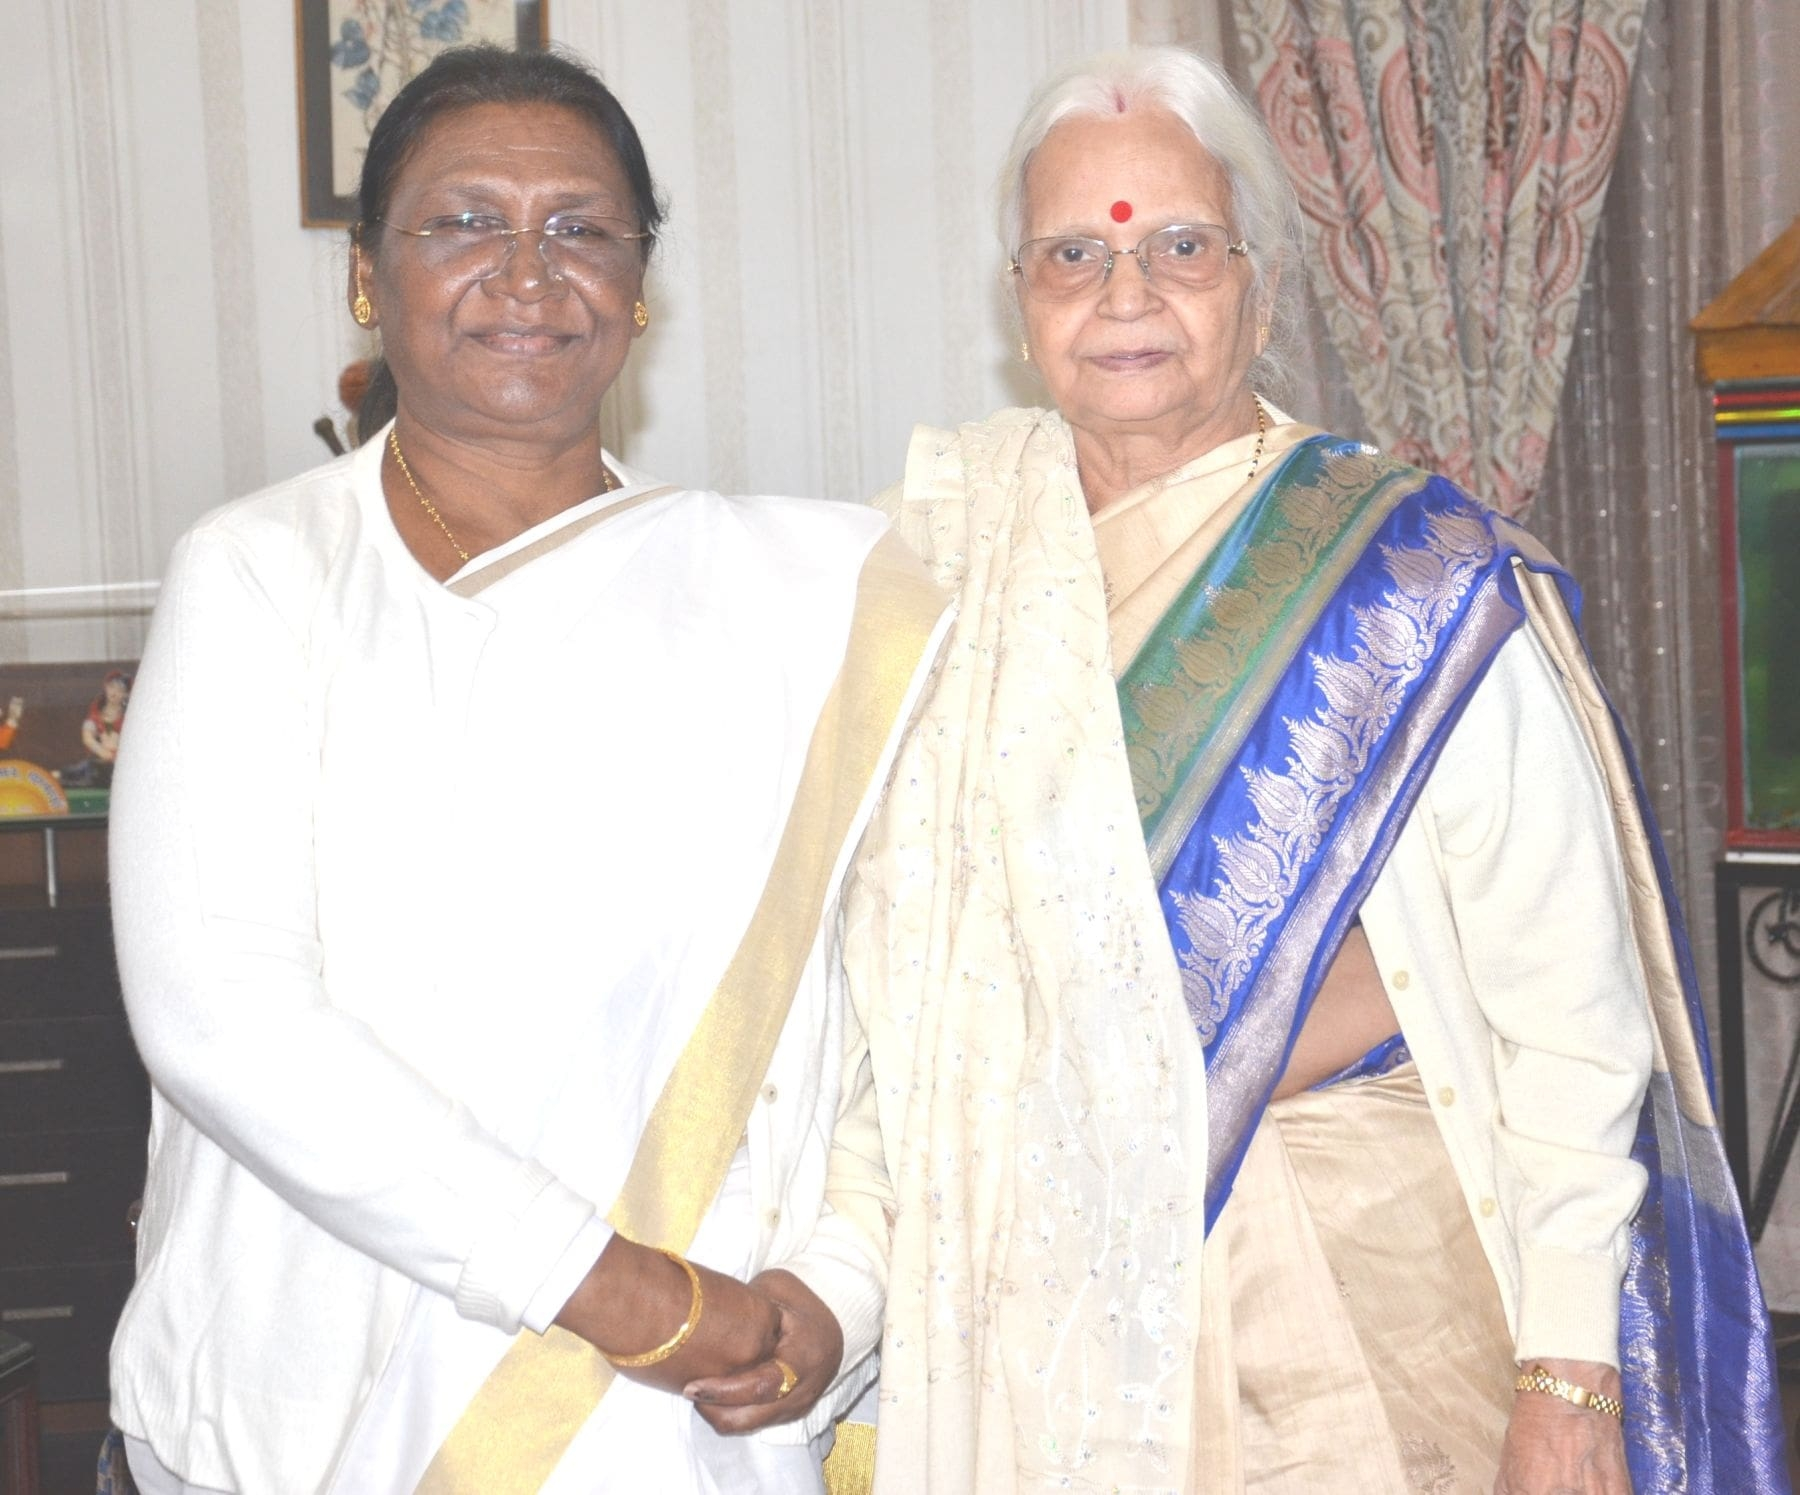 <p>Former Governor of Goa, Mridula Sinha met the Honorable Governor Draupadi Murmuon dated 19/12/2019 at Raj Bhawan. It was a courtesy call.</p>